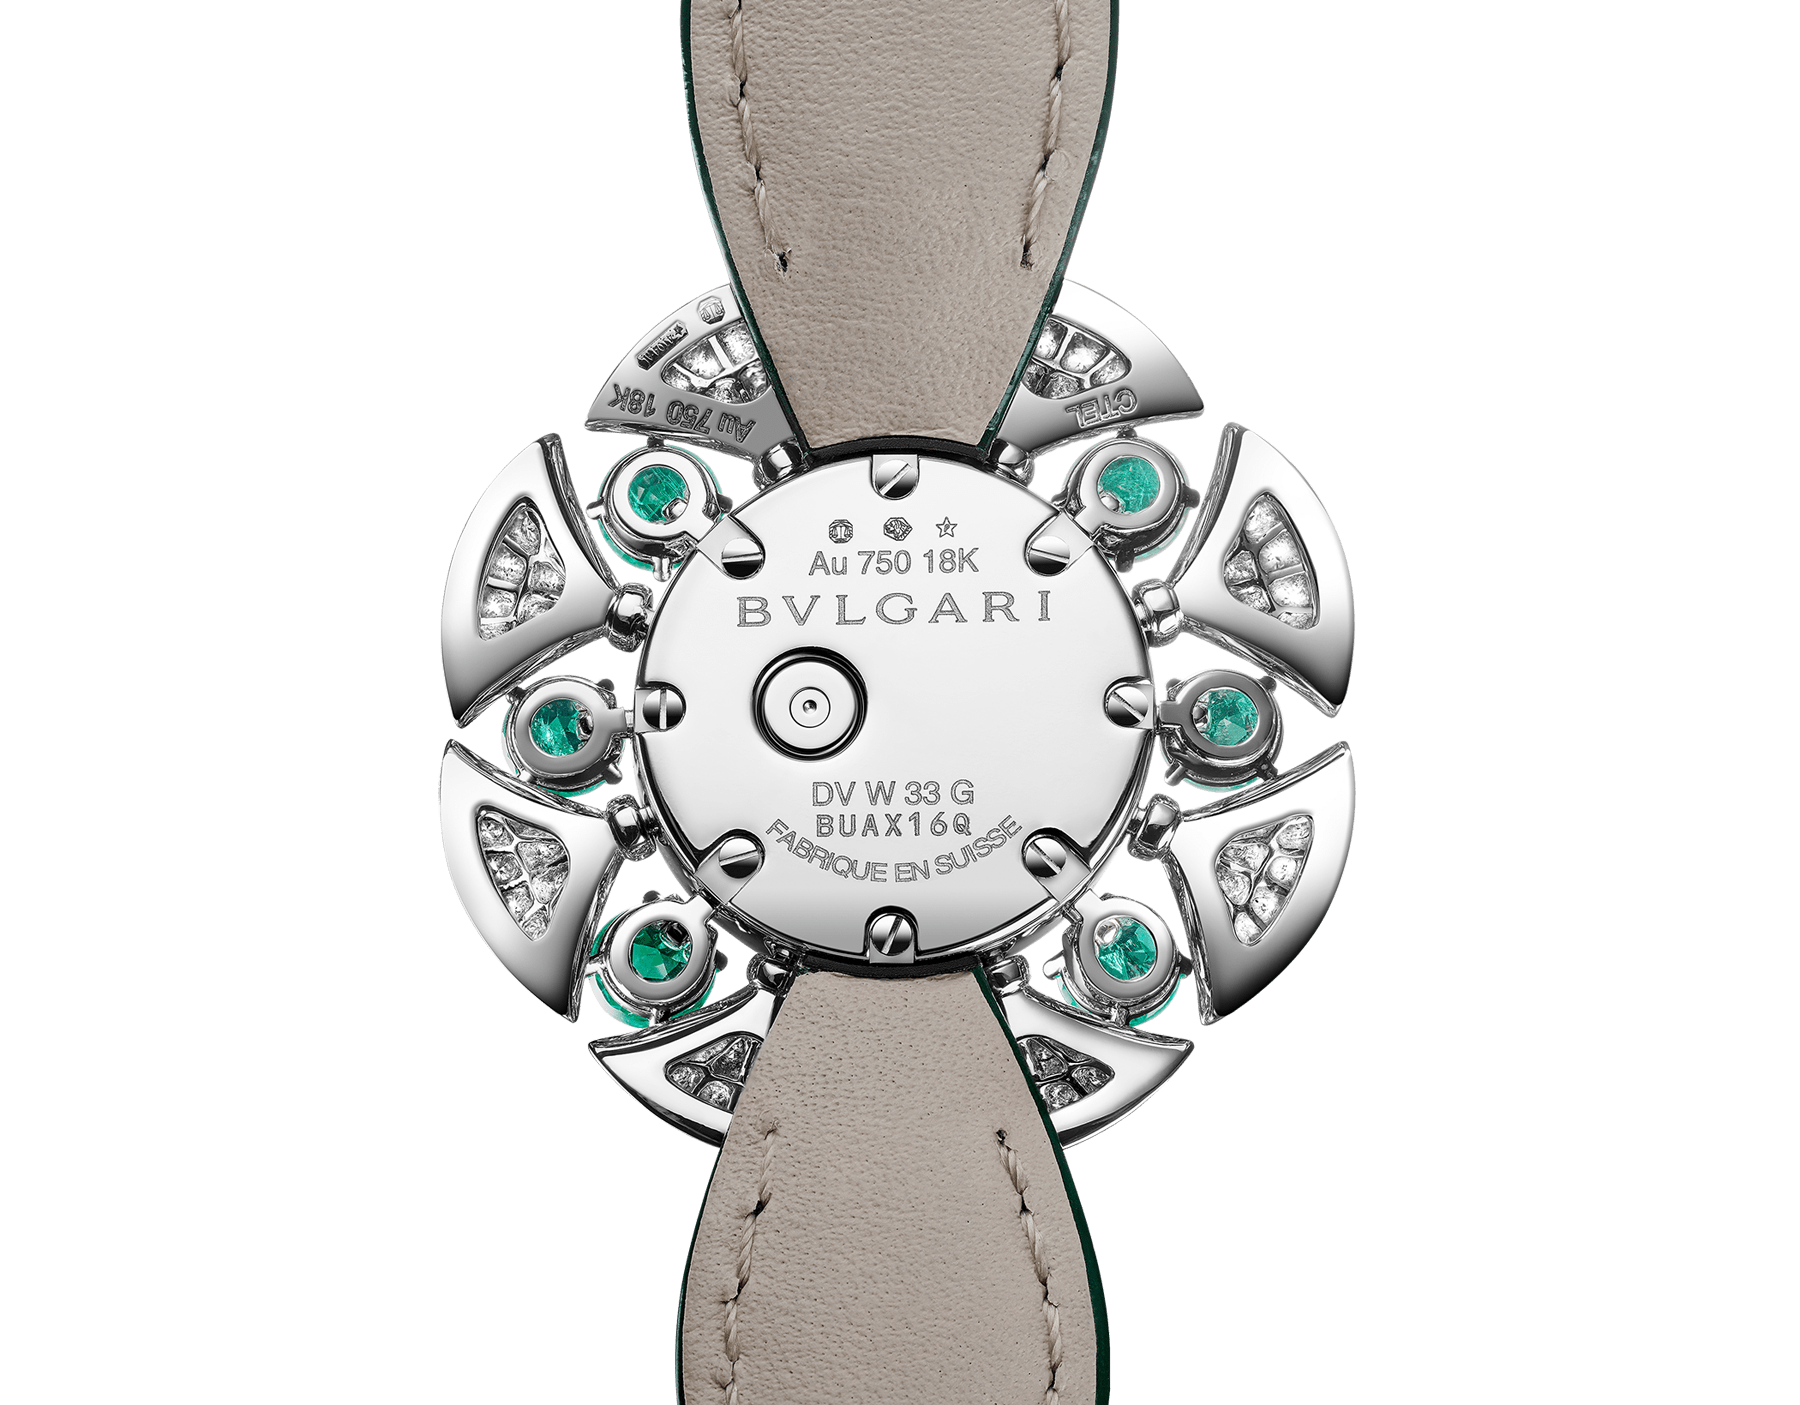 DIVAS' DREAM Divissima High Jewellery watch with 18 kt white gold case and mobile petals set with 8 brilliant-cut emeralds and round brilliant-cut diamonds, mother-of-pearl dial, and green alligator bracelet. Water-resistant up to 30 metres 103505 image 3